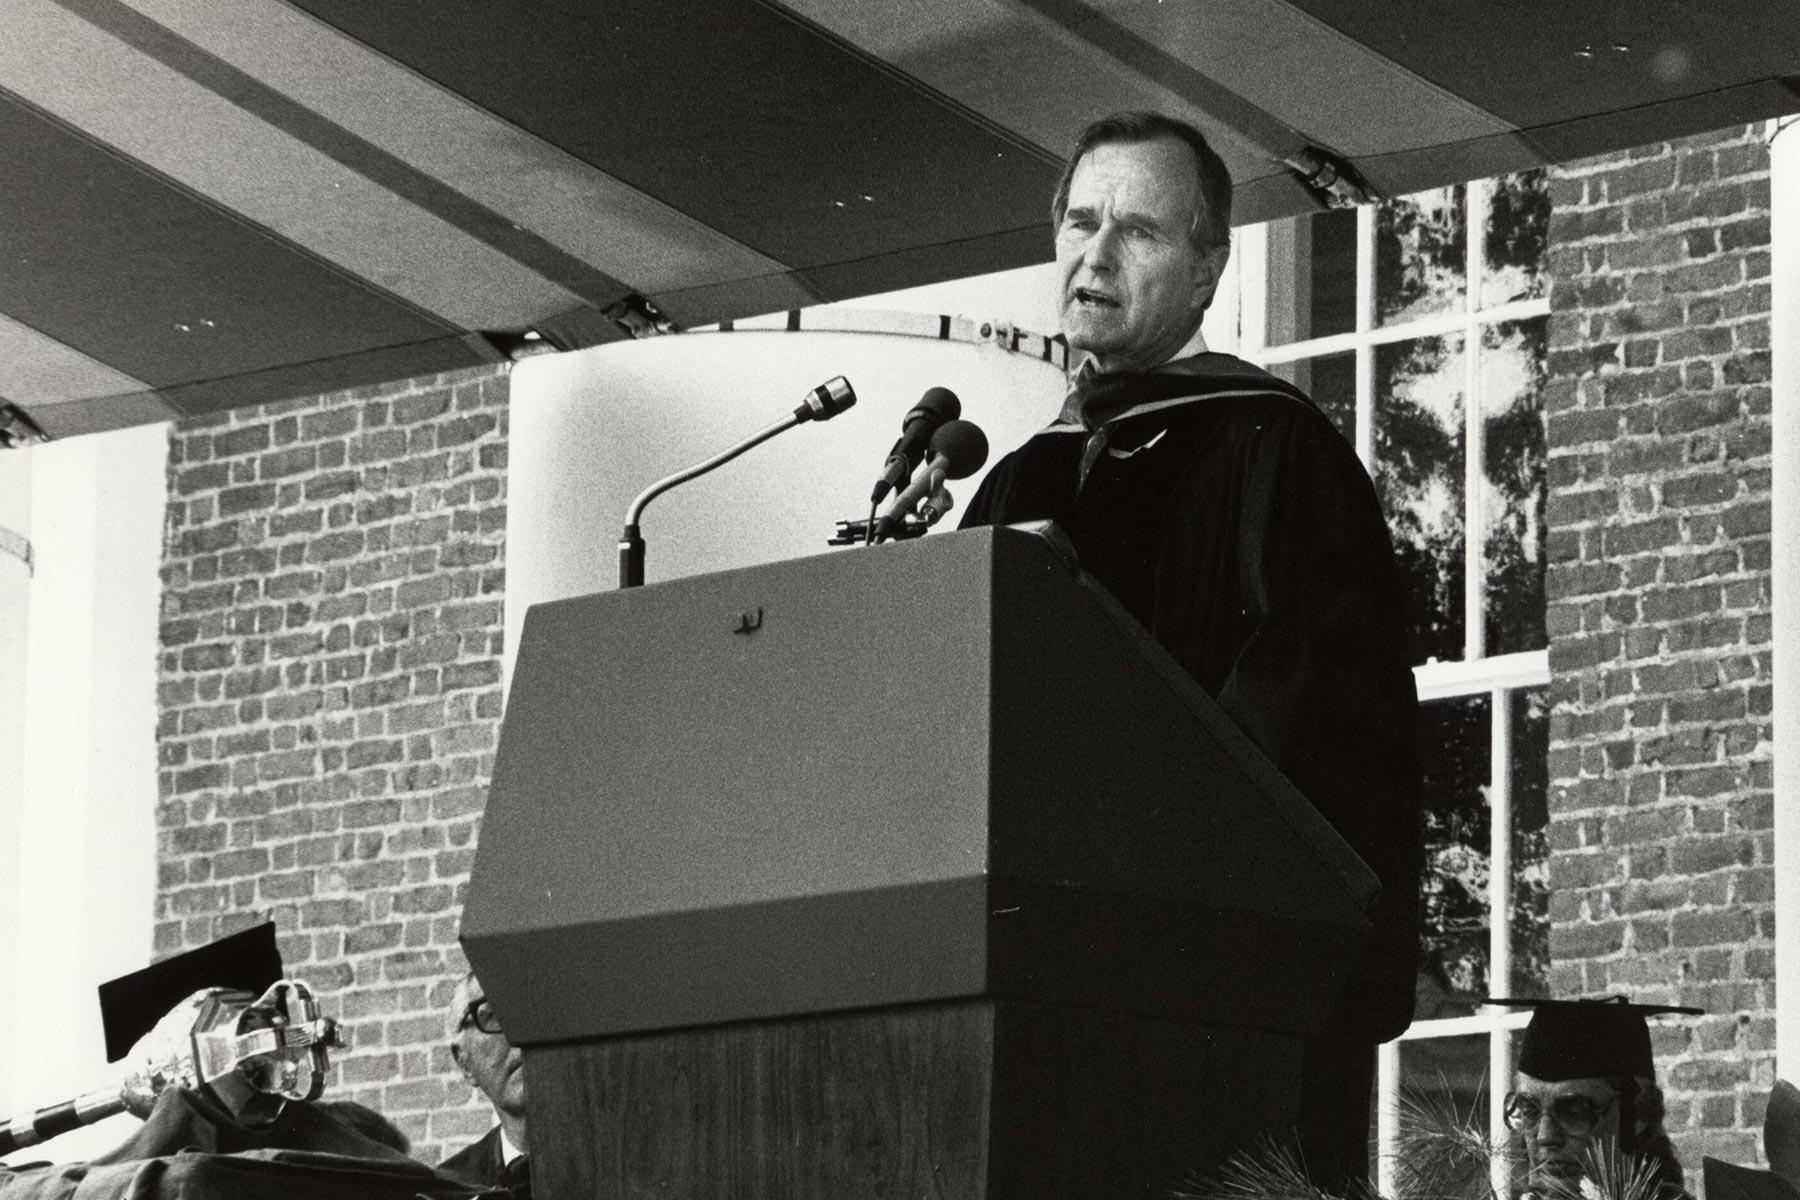 Then-Vice President George H.W. Bush addressed graduates at UVA's Final Exercises in 1981.